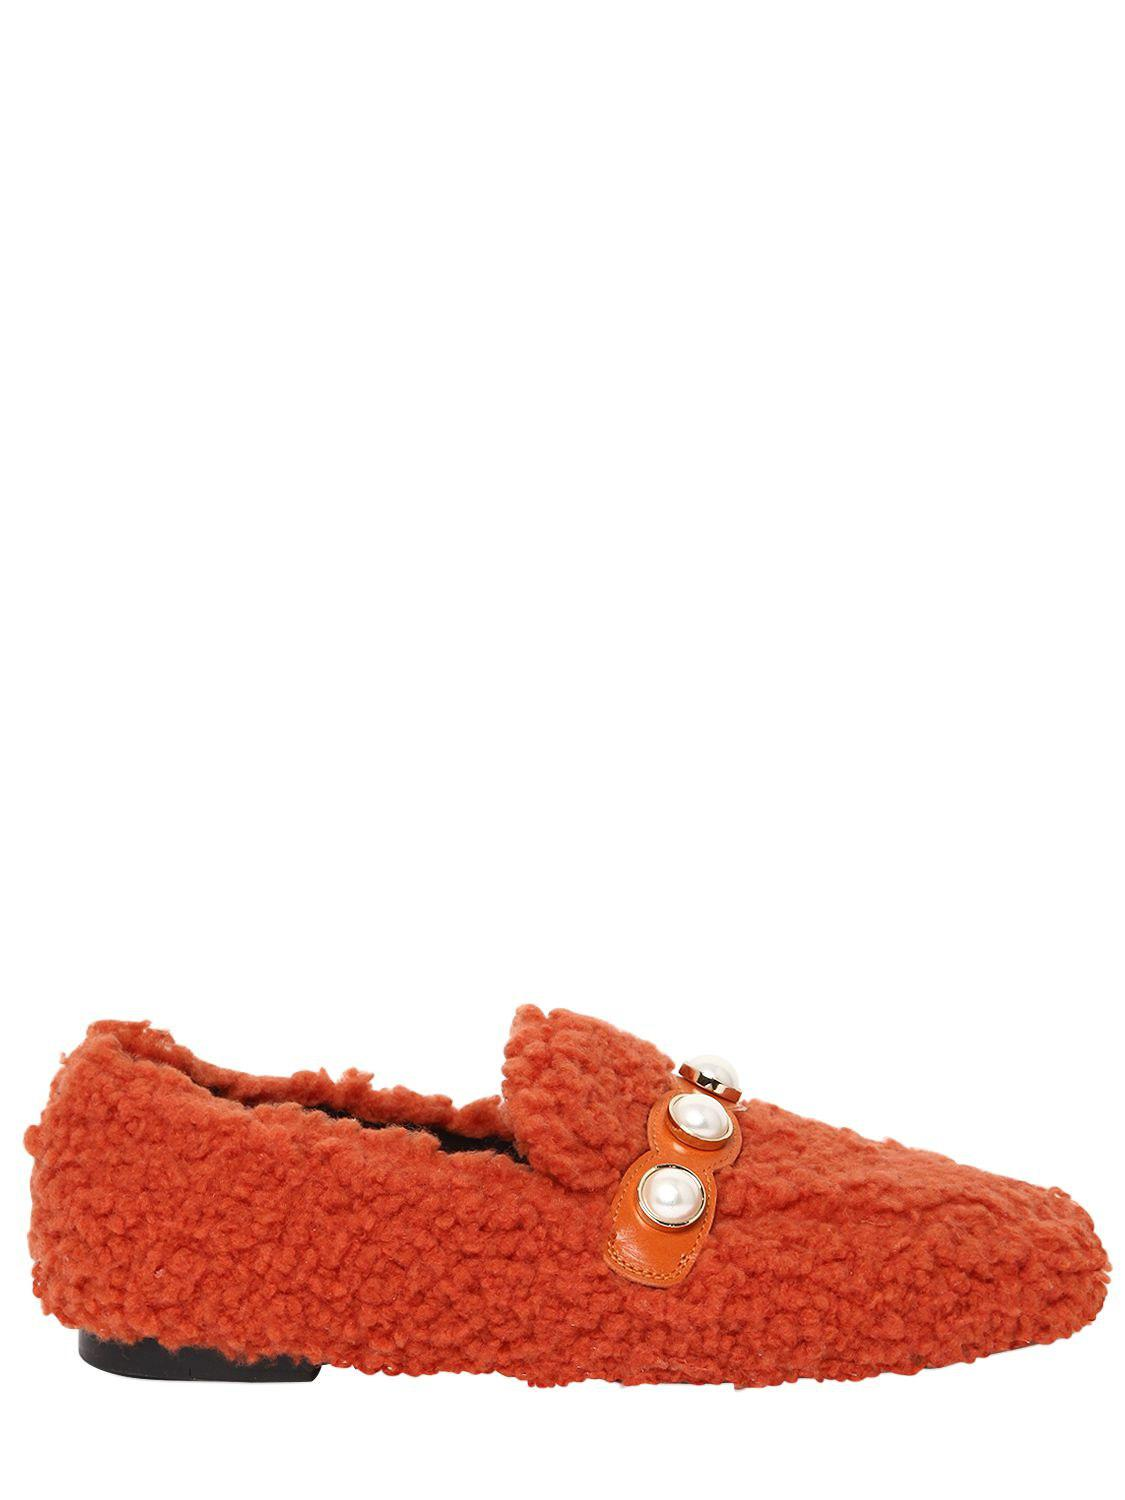 SUECOMMA BONNIE 10MM FURRY FAUX SHEARLING LOAFERS Fashion Style Cheap Price Huge Surprise Online Uk5dv2Mrdy